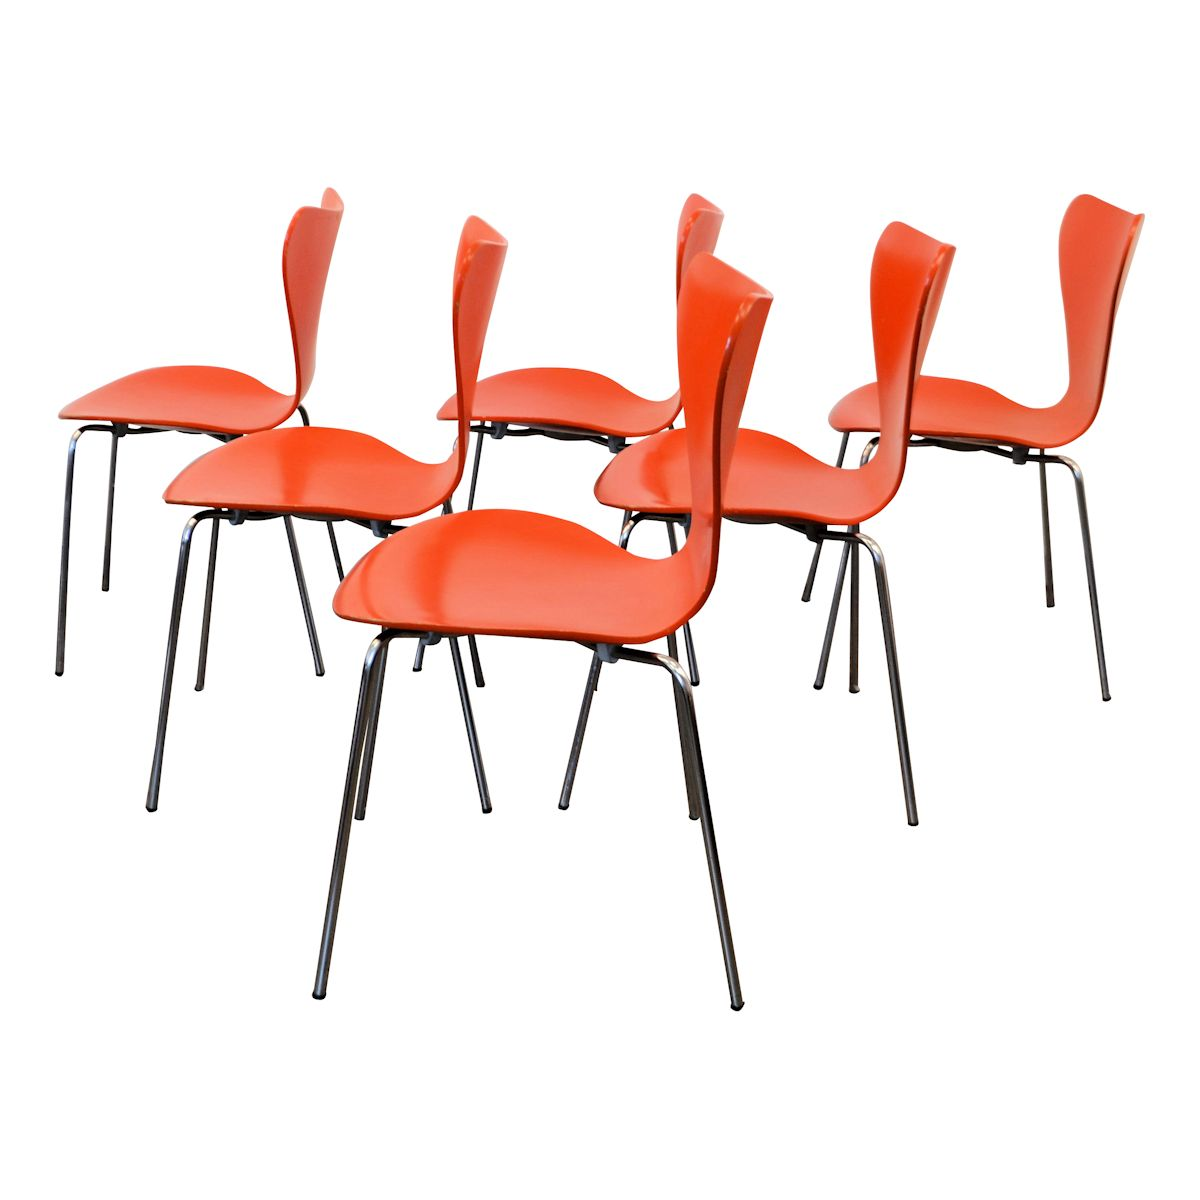 Model 3107 Butterfly Chairs by Arne Jacobsen - side